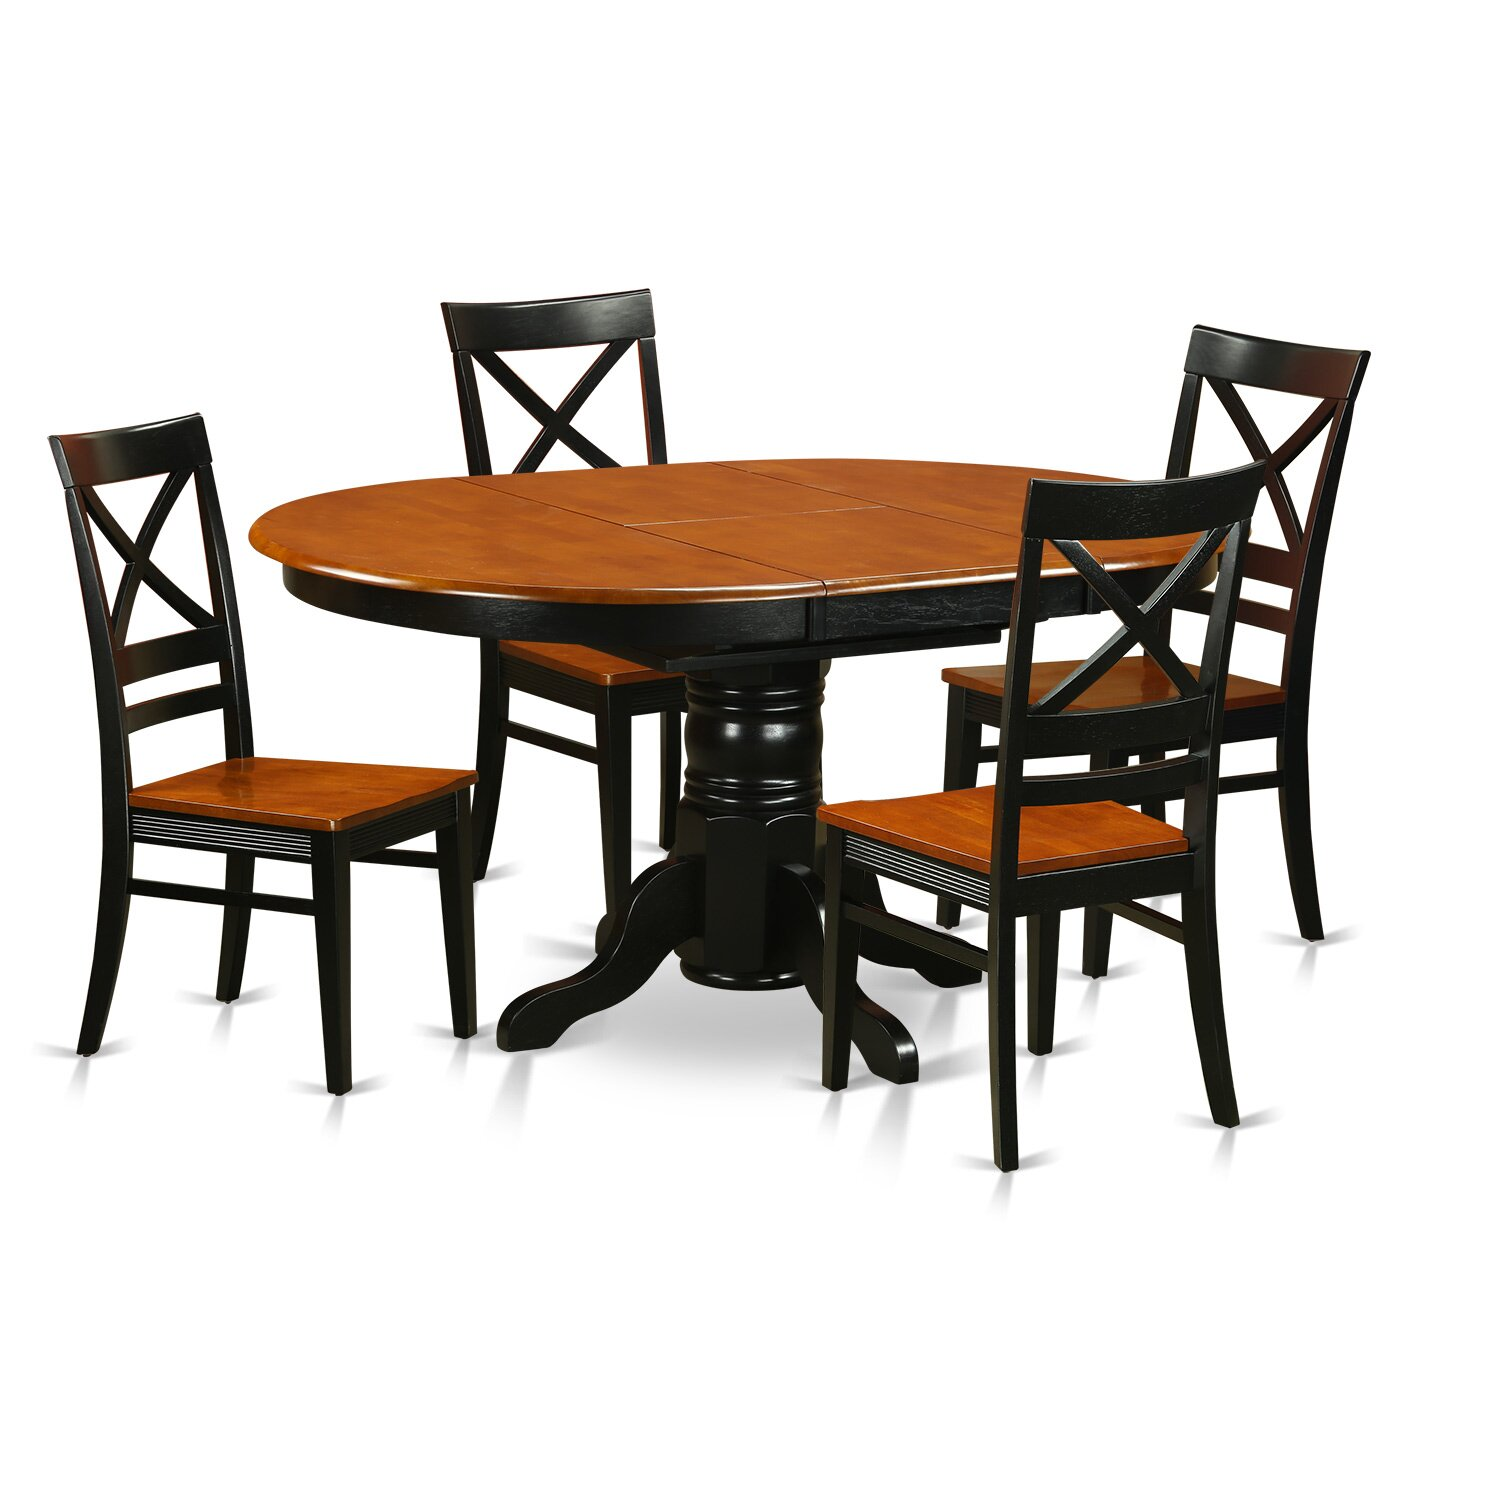 5pc Set Round Dinette Kitchen Table W 4 Microfiber: Wooden Importers Avon 5 Piece Dining Set & Reviews